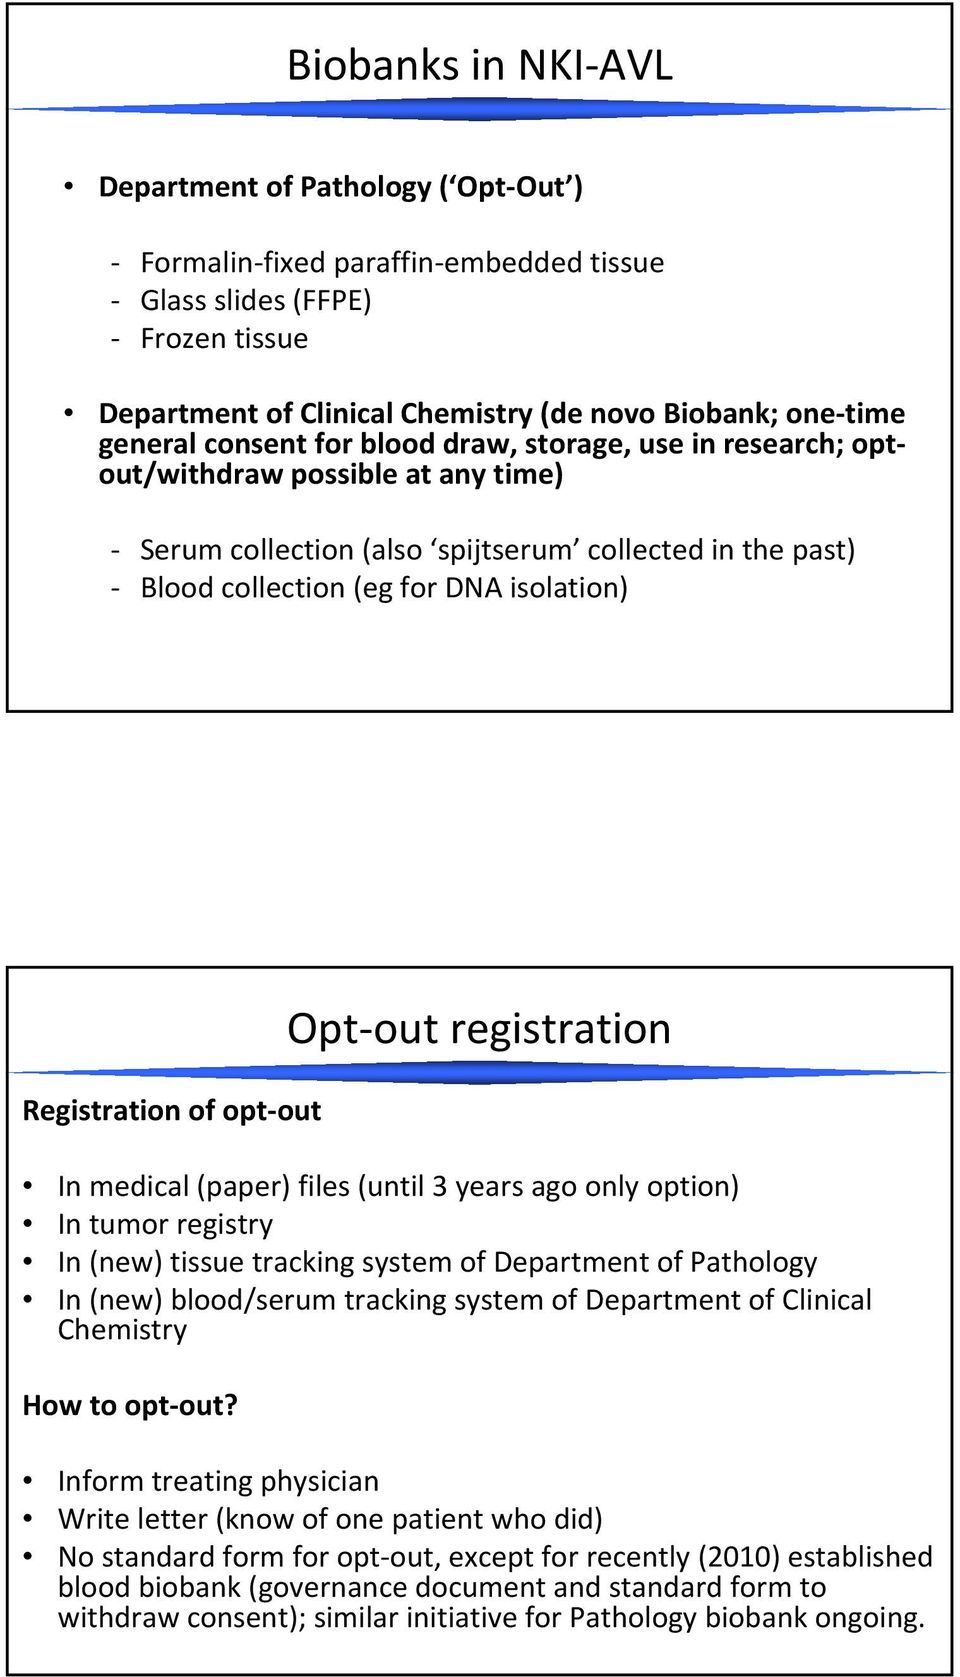 of opt out Opt out registration In medical (paper) files (until 3 years ago only option) In tumor registry In (new) tissue tracking system of Department of Pathology In (new) blood/serum tracking